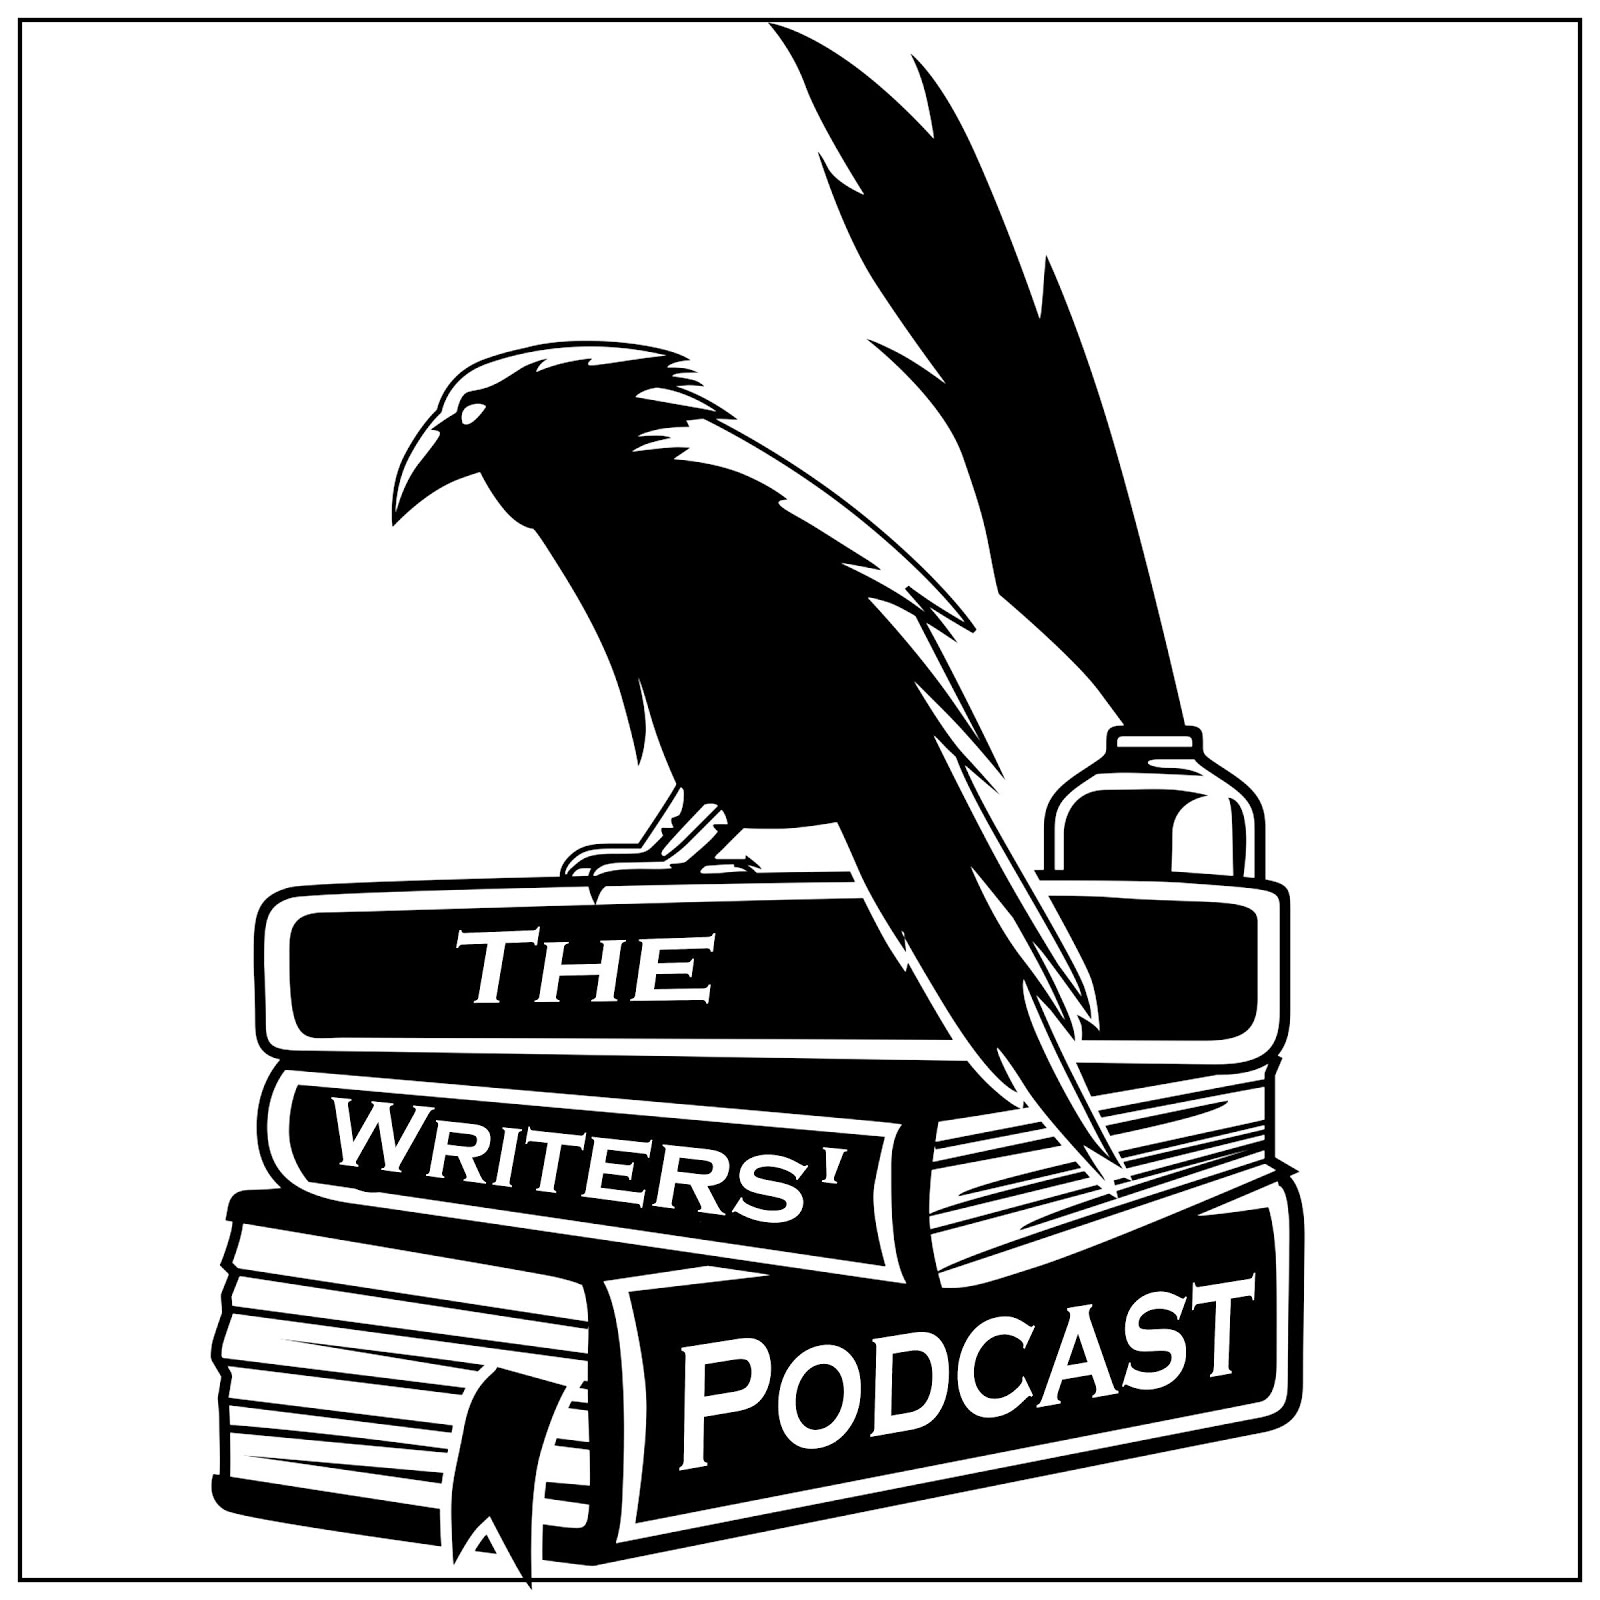 Co-host of The Writers' Podcast